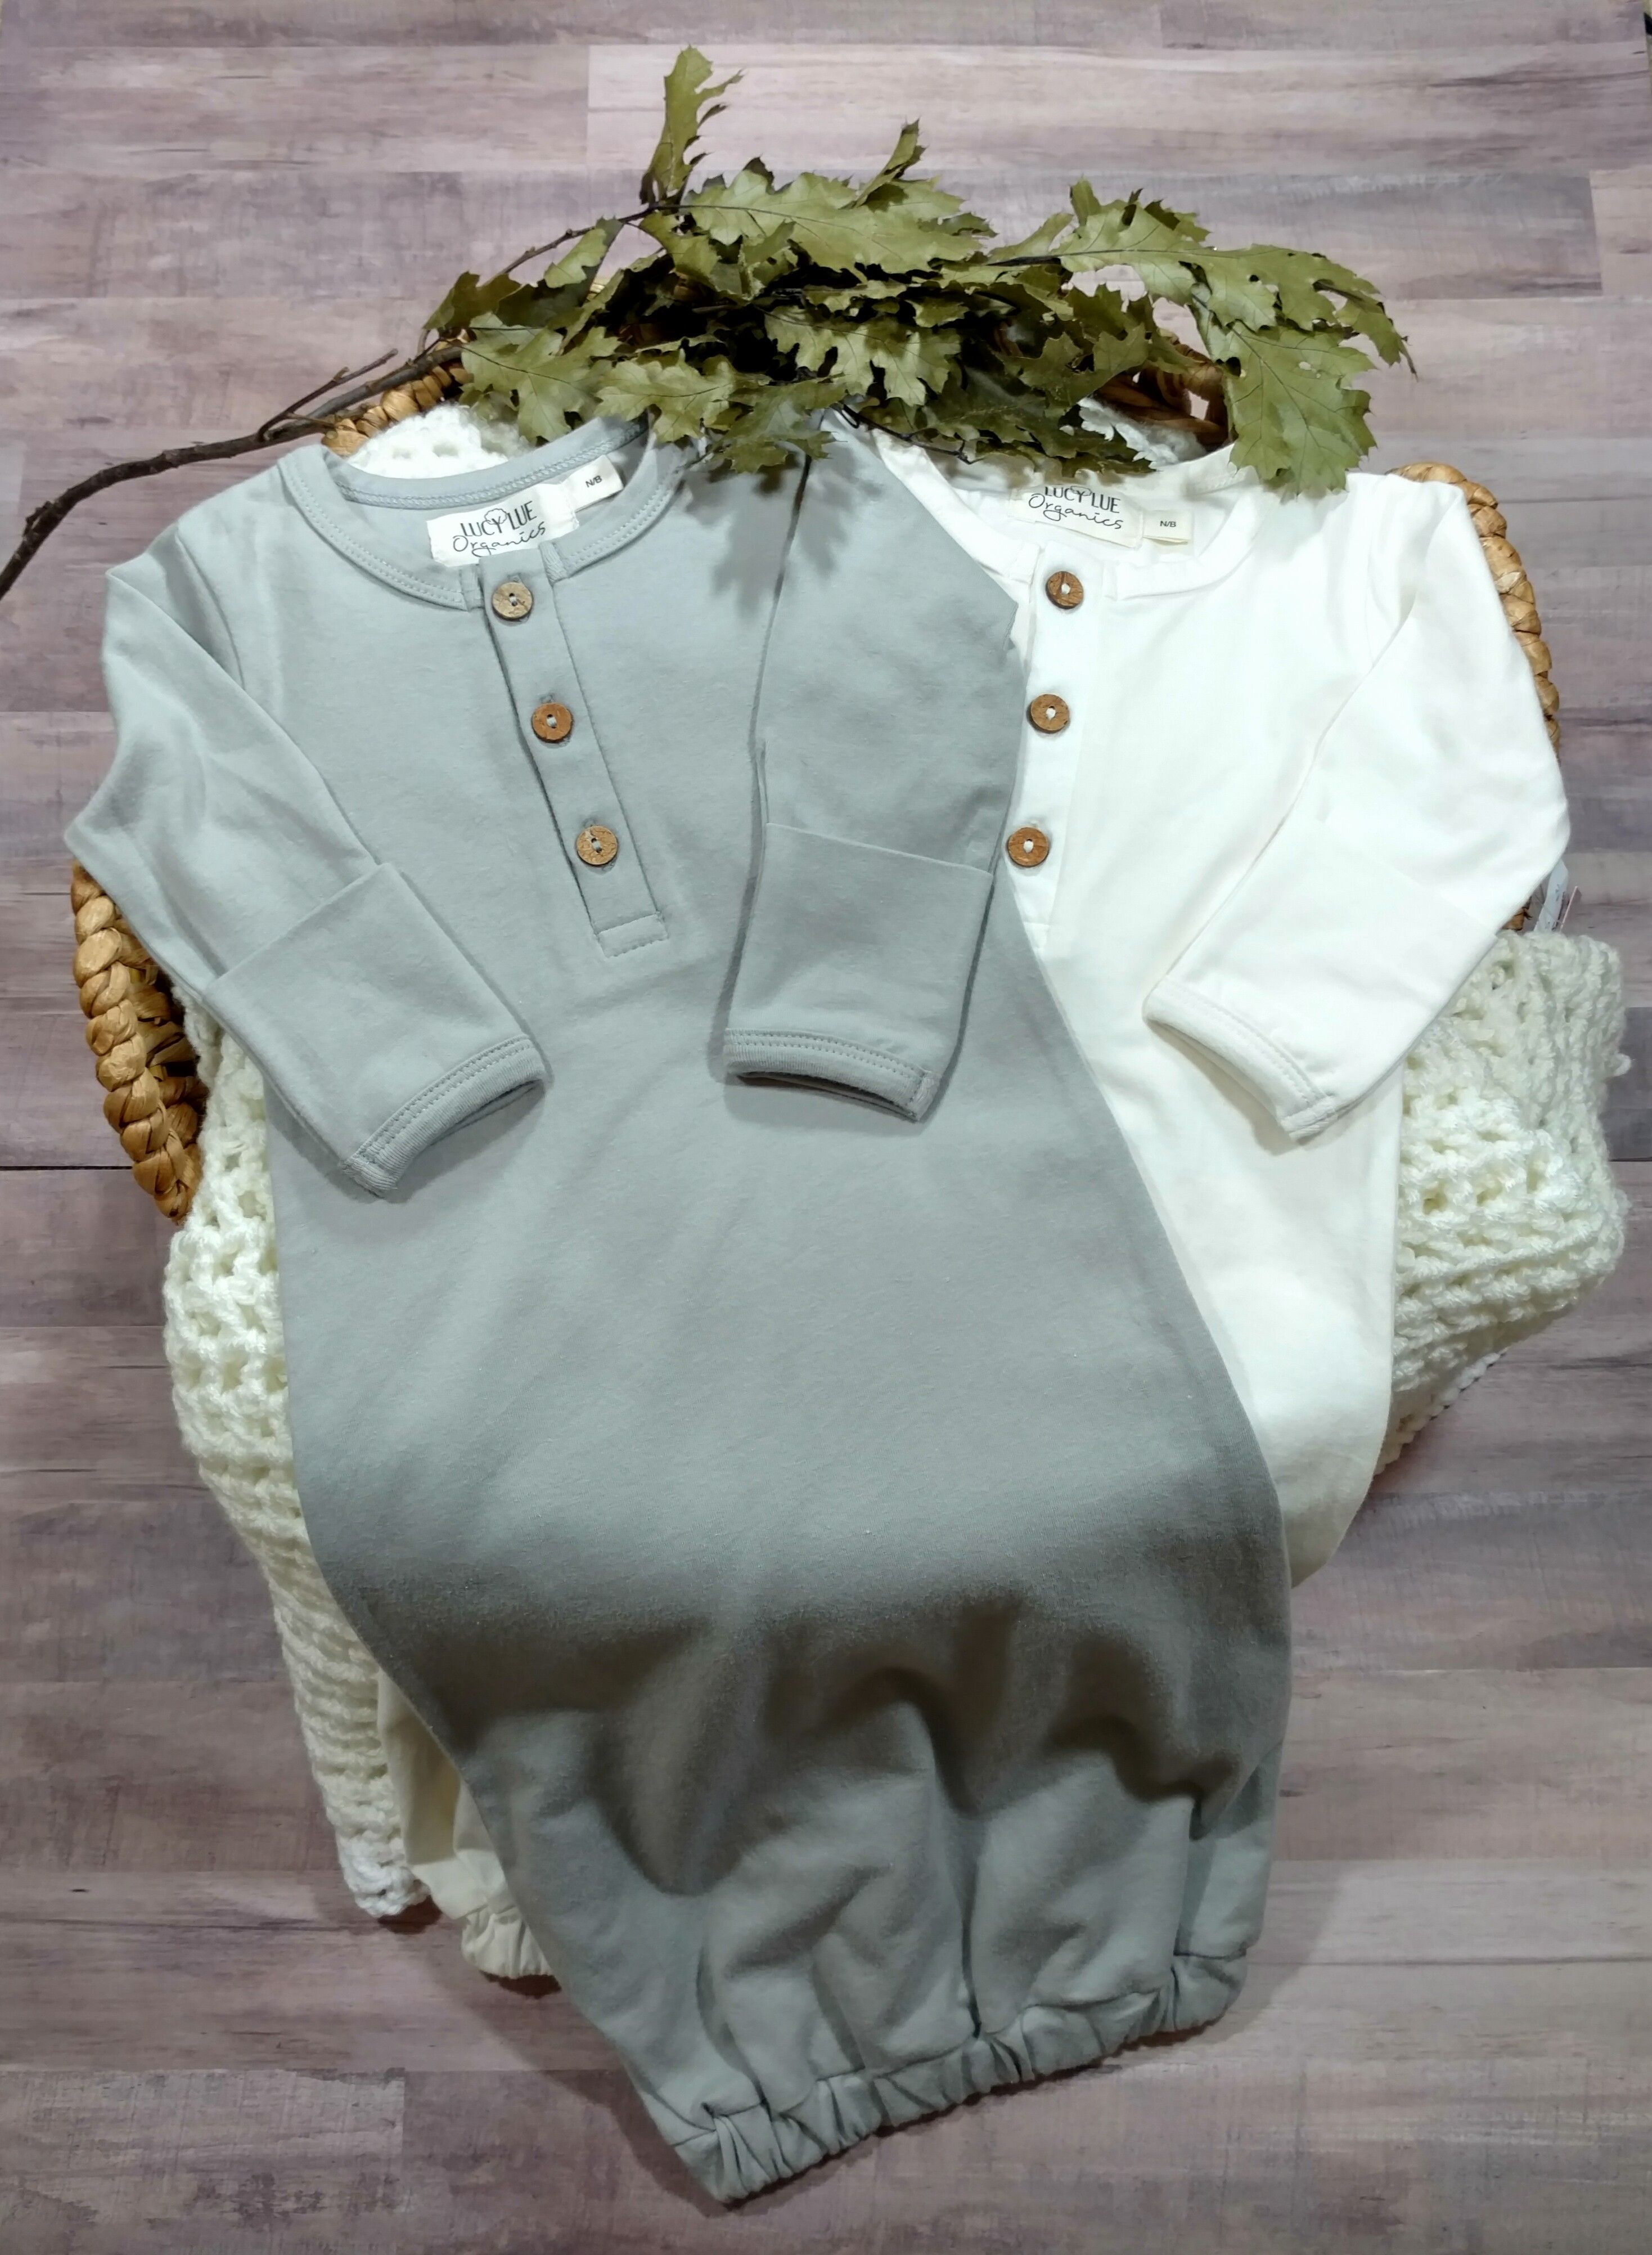 Exclusive Lucy Lue Organics Newborn ing home outfit Luxury baby